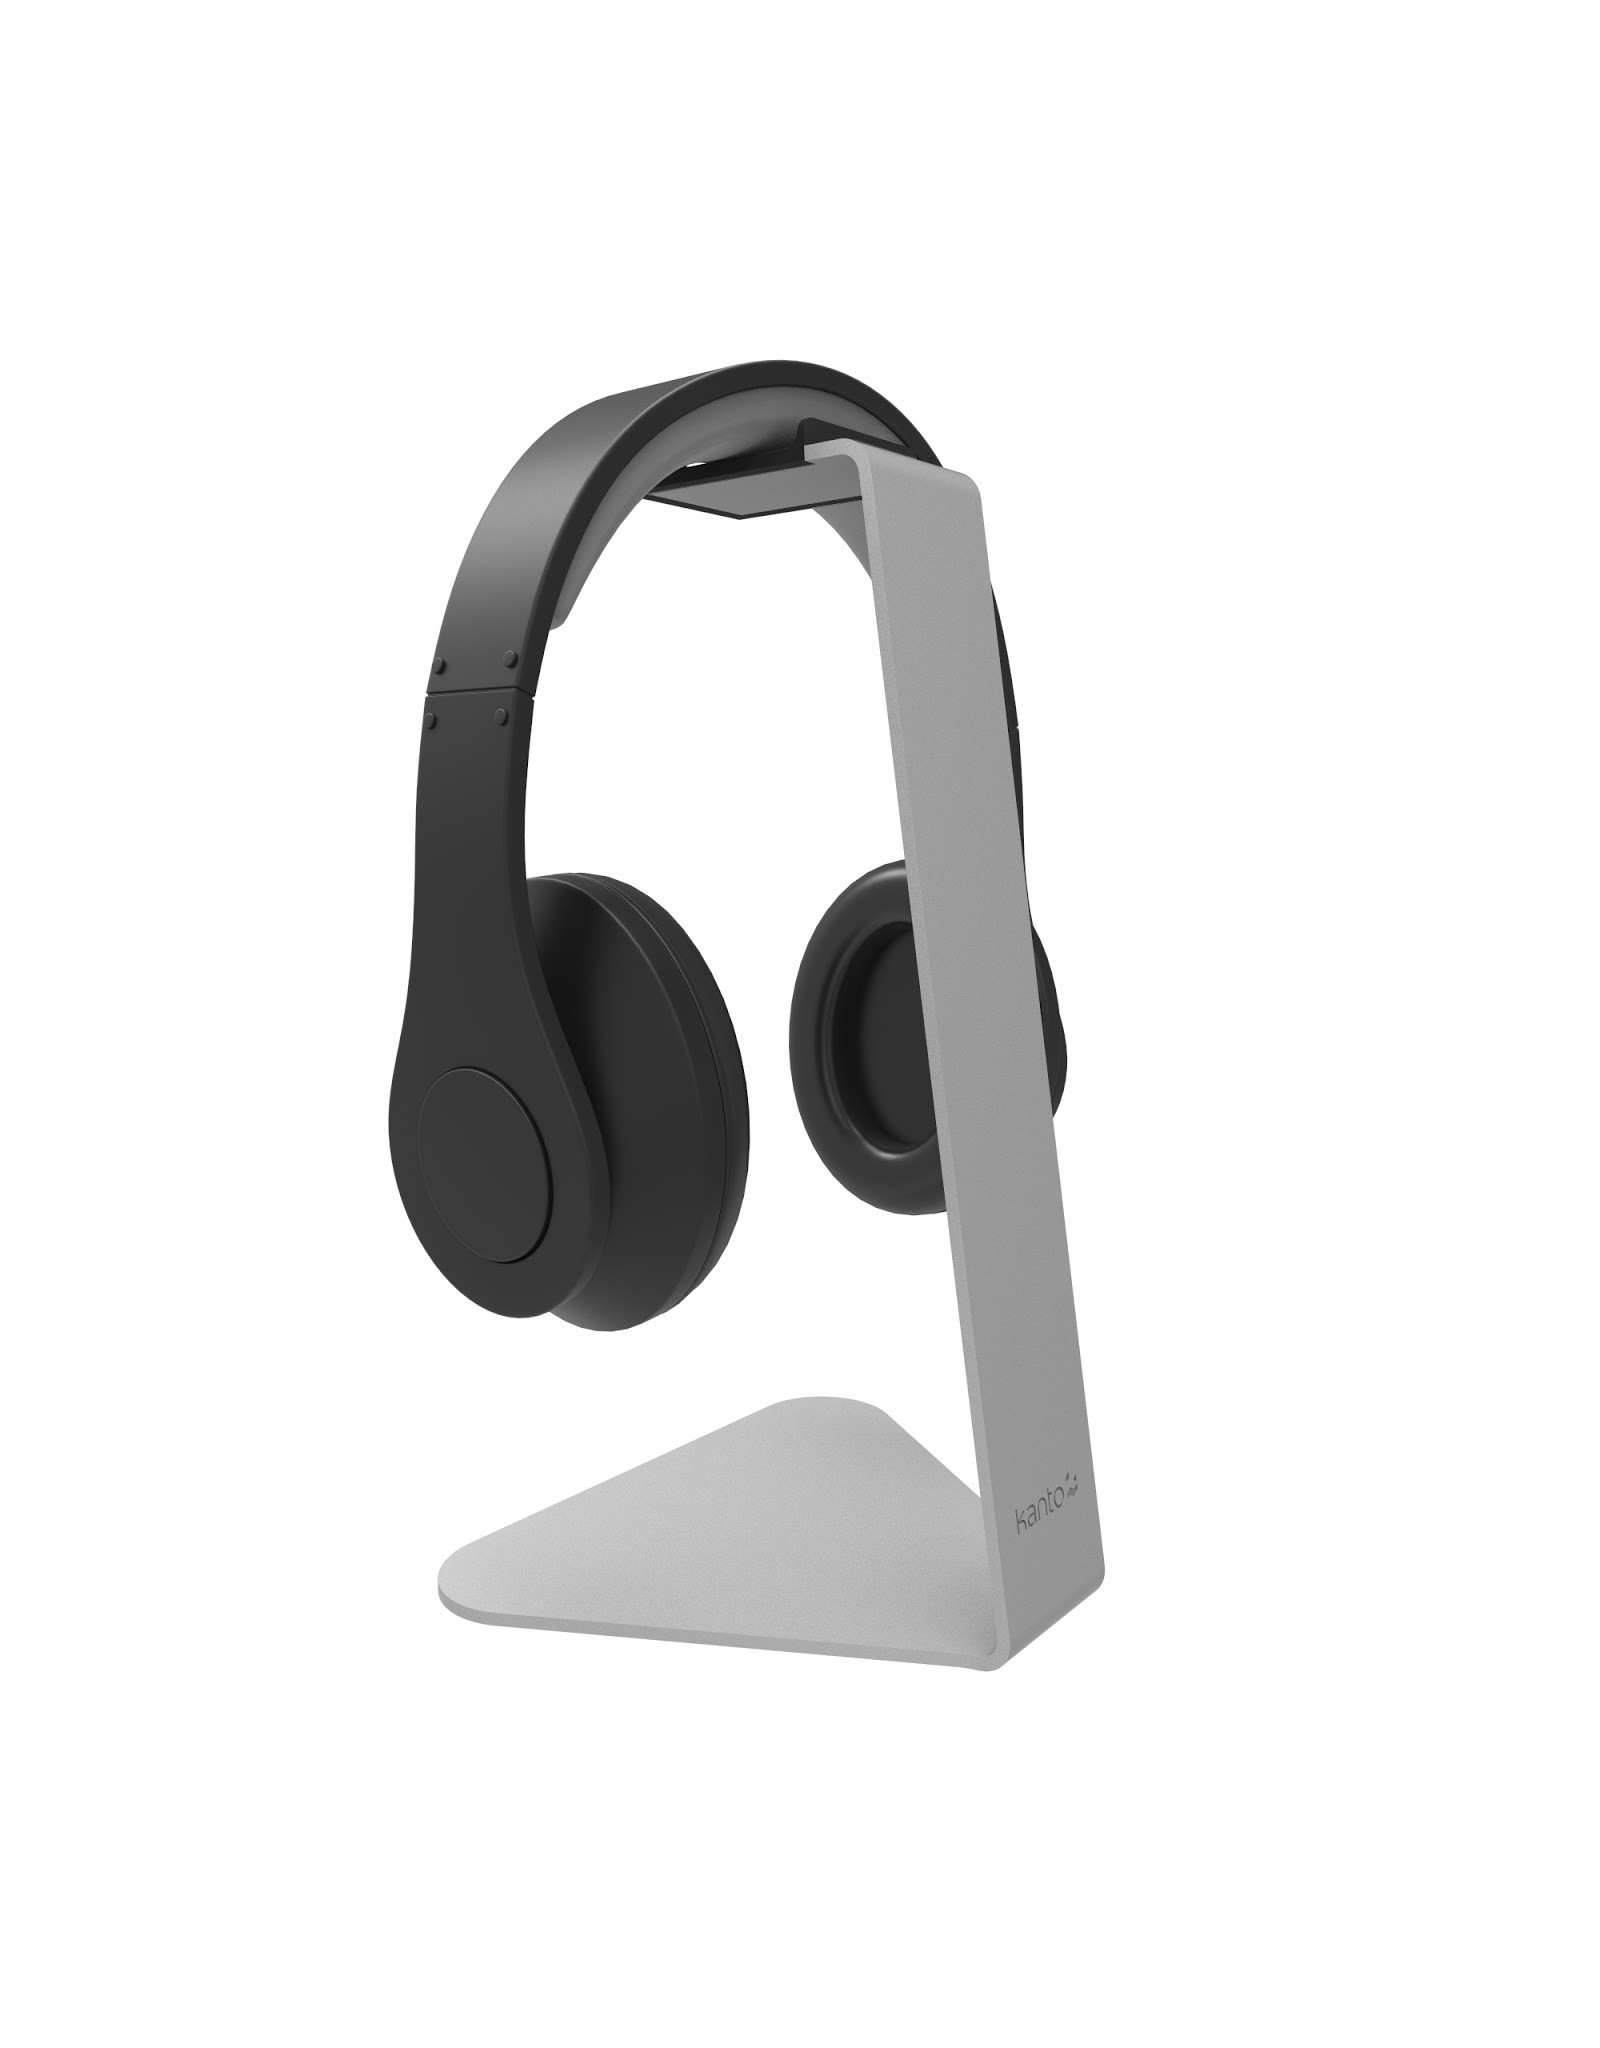 Kanto Kanto H1 Headphone Stand